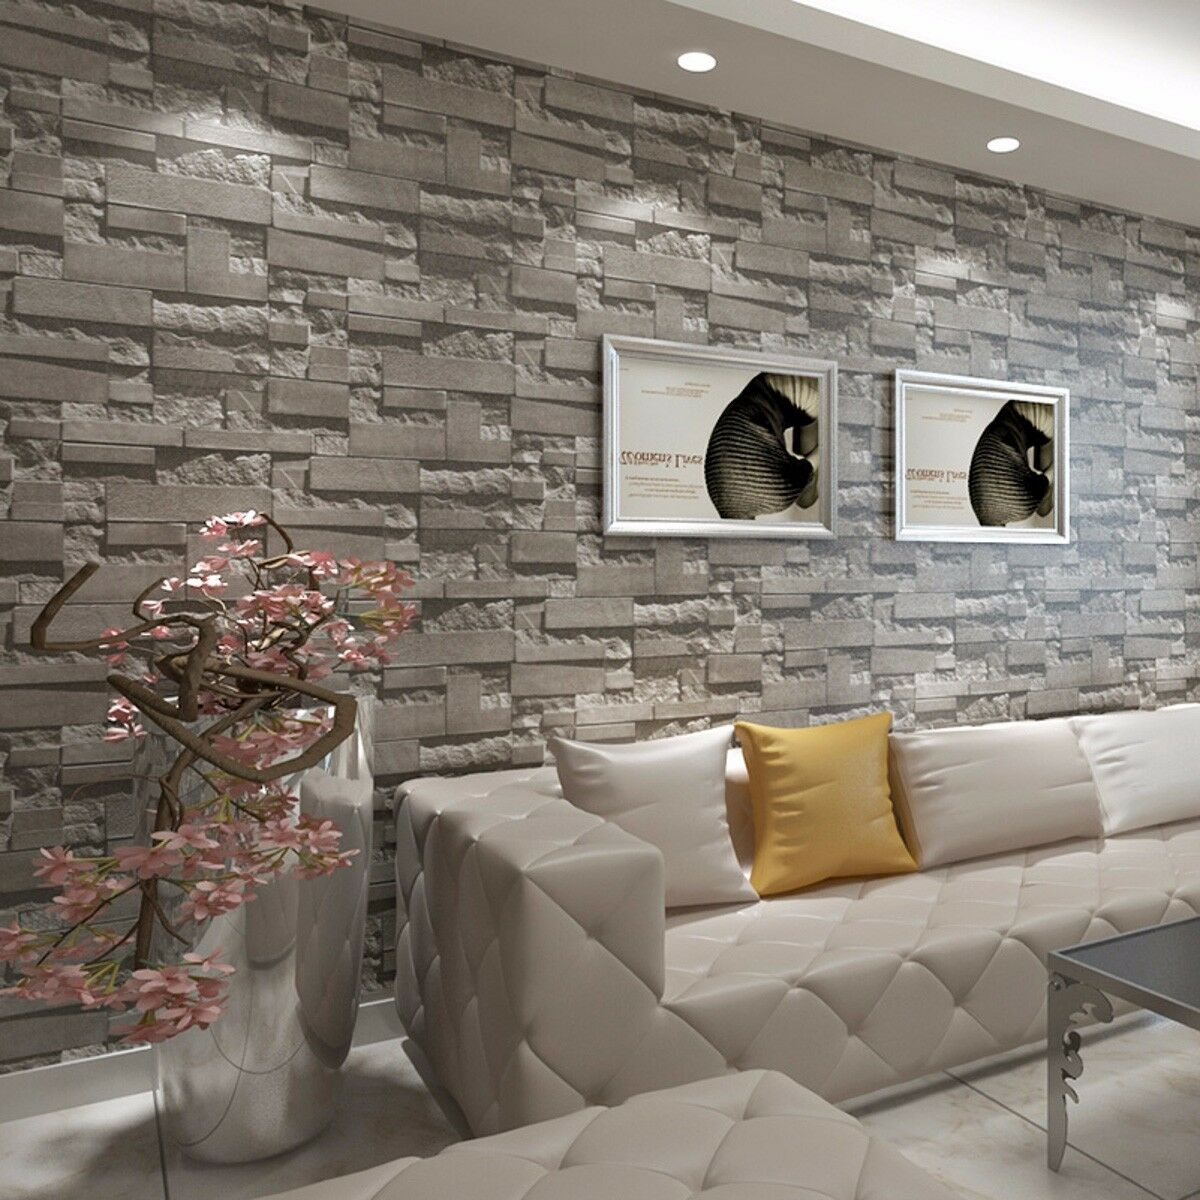 Modern D Brick Wallpaper Bedroom Living Room Wall Background TV - 3d brick wallpaper living room